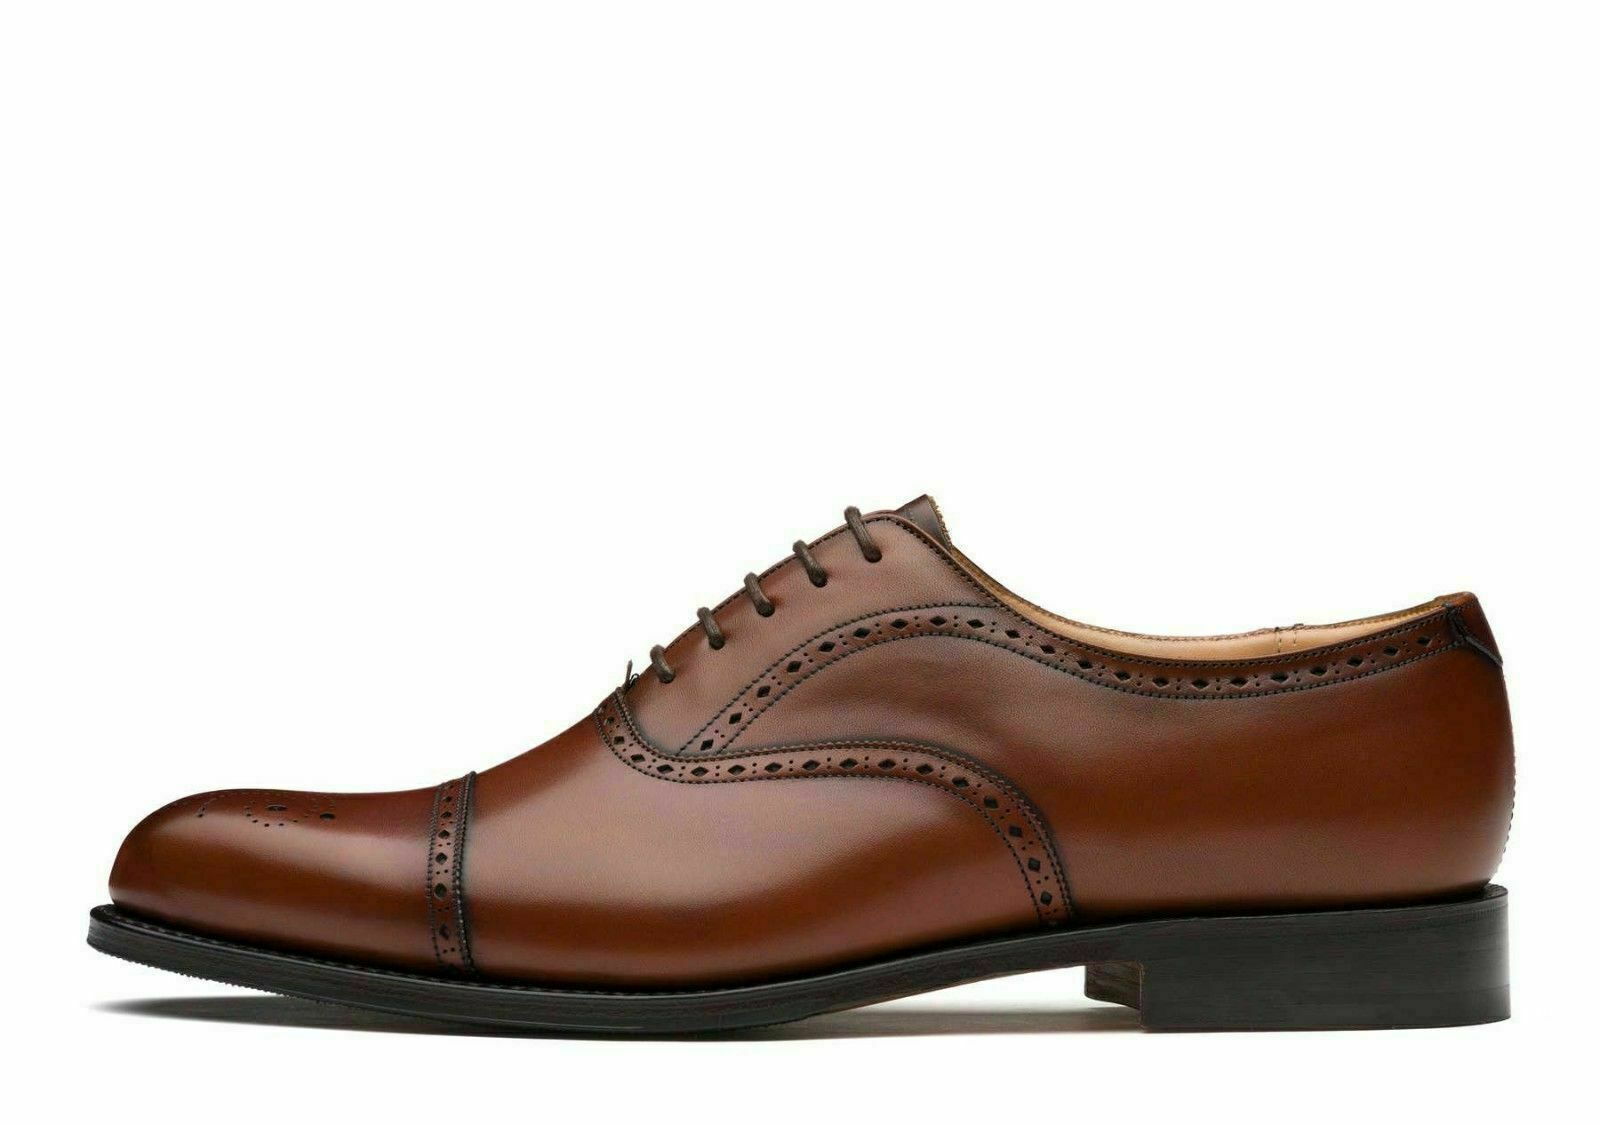 Mens Handmade shoes Brown Leather Oxford Brogue Lace Up Formal Wear Casual Boots